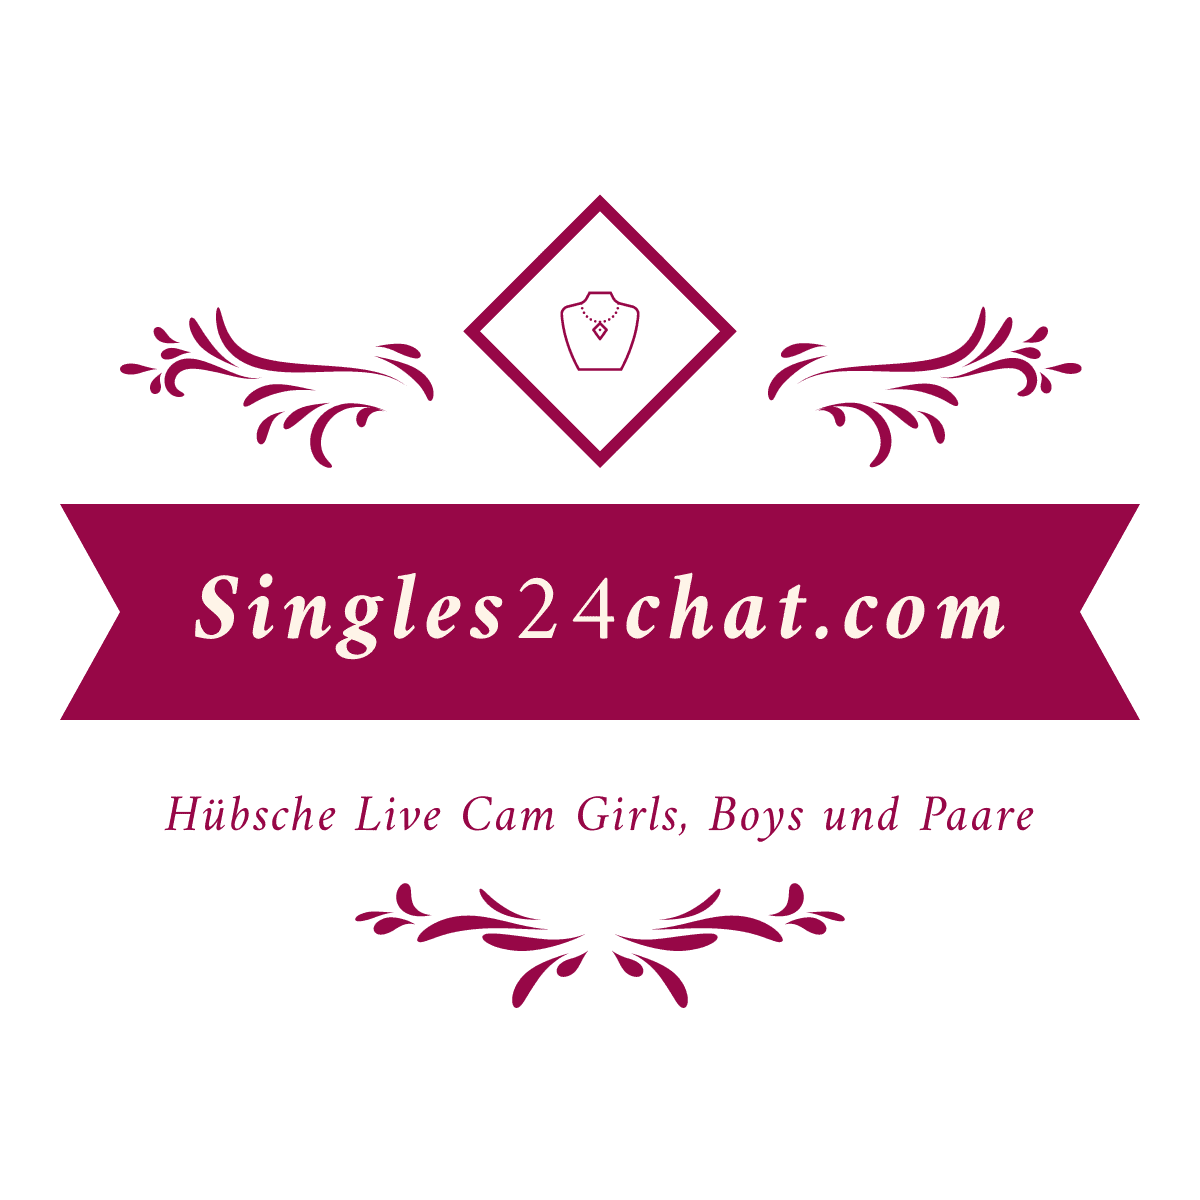 Singles24chat